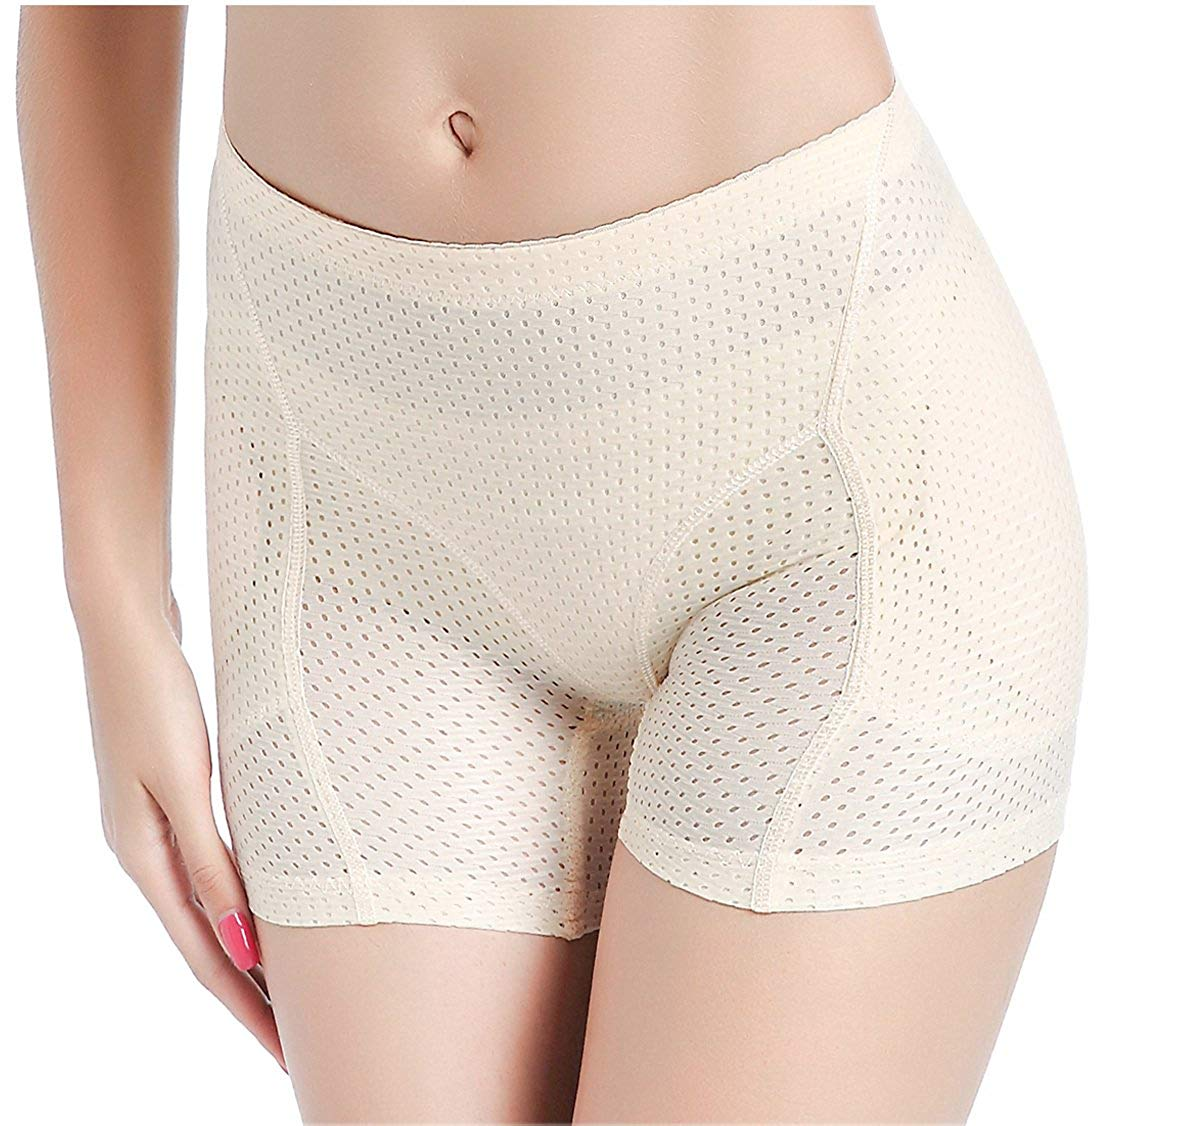 Quality Women Black Butt Lifter Open Bottom Tummy Control Hot Stovepipe Buttock Enhancer Slimming Leg Trimming Women's Intimates